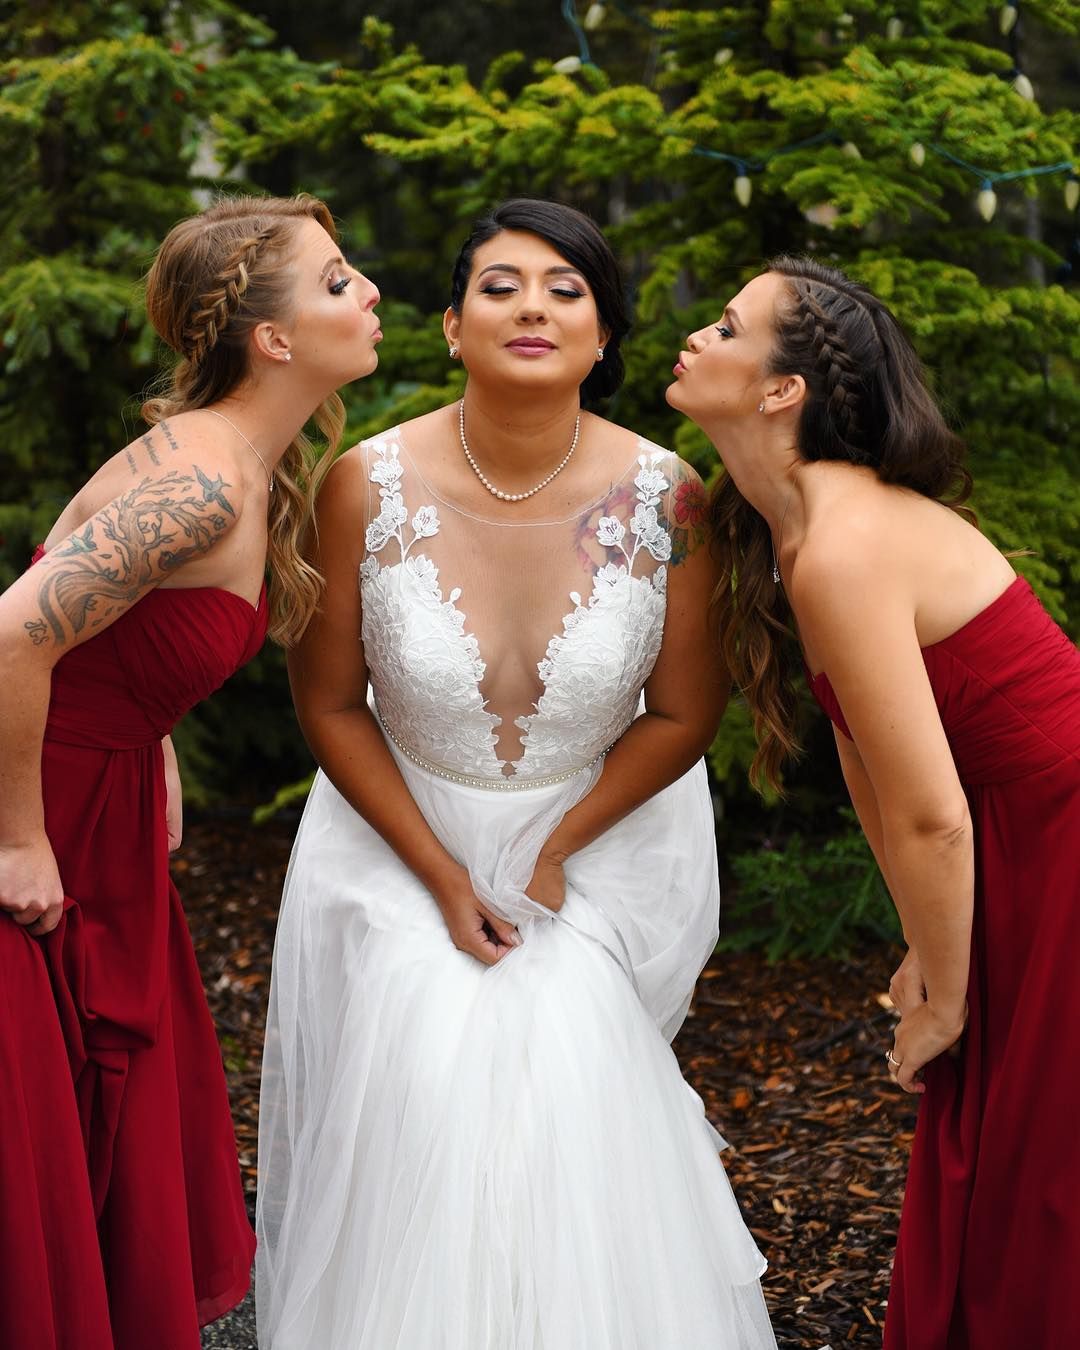 Beautiful Samantha and her bridal party